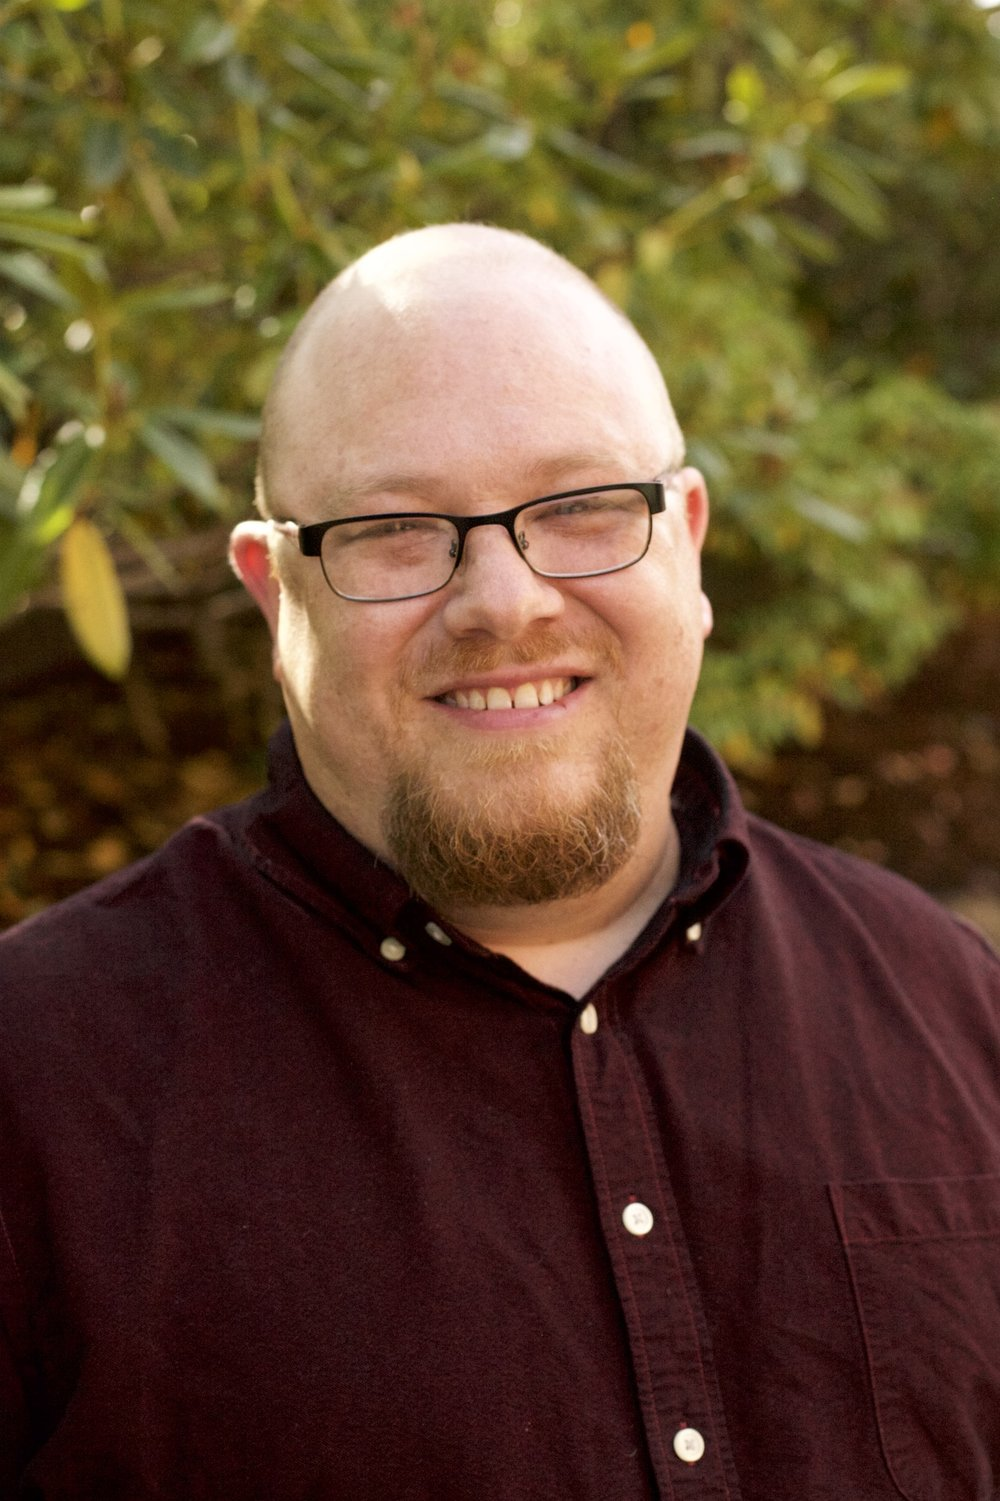 Matt Markell, MA, MFT, LMHC, Therapist    ∙  Adolescents & Adults, 14 & up  ∙  Couples  ∙  Family Therapy  ∙  Anxiety  ∙  Depression  ∙  Trauma  ∙  Grief and Loss  ∙  Parenting  ∙  Life Transitions  ∙  Spiritual Exploration  ∙  Spiritual and Religious Trauma  ∙  Stress Management